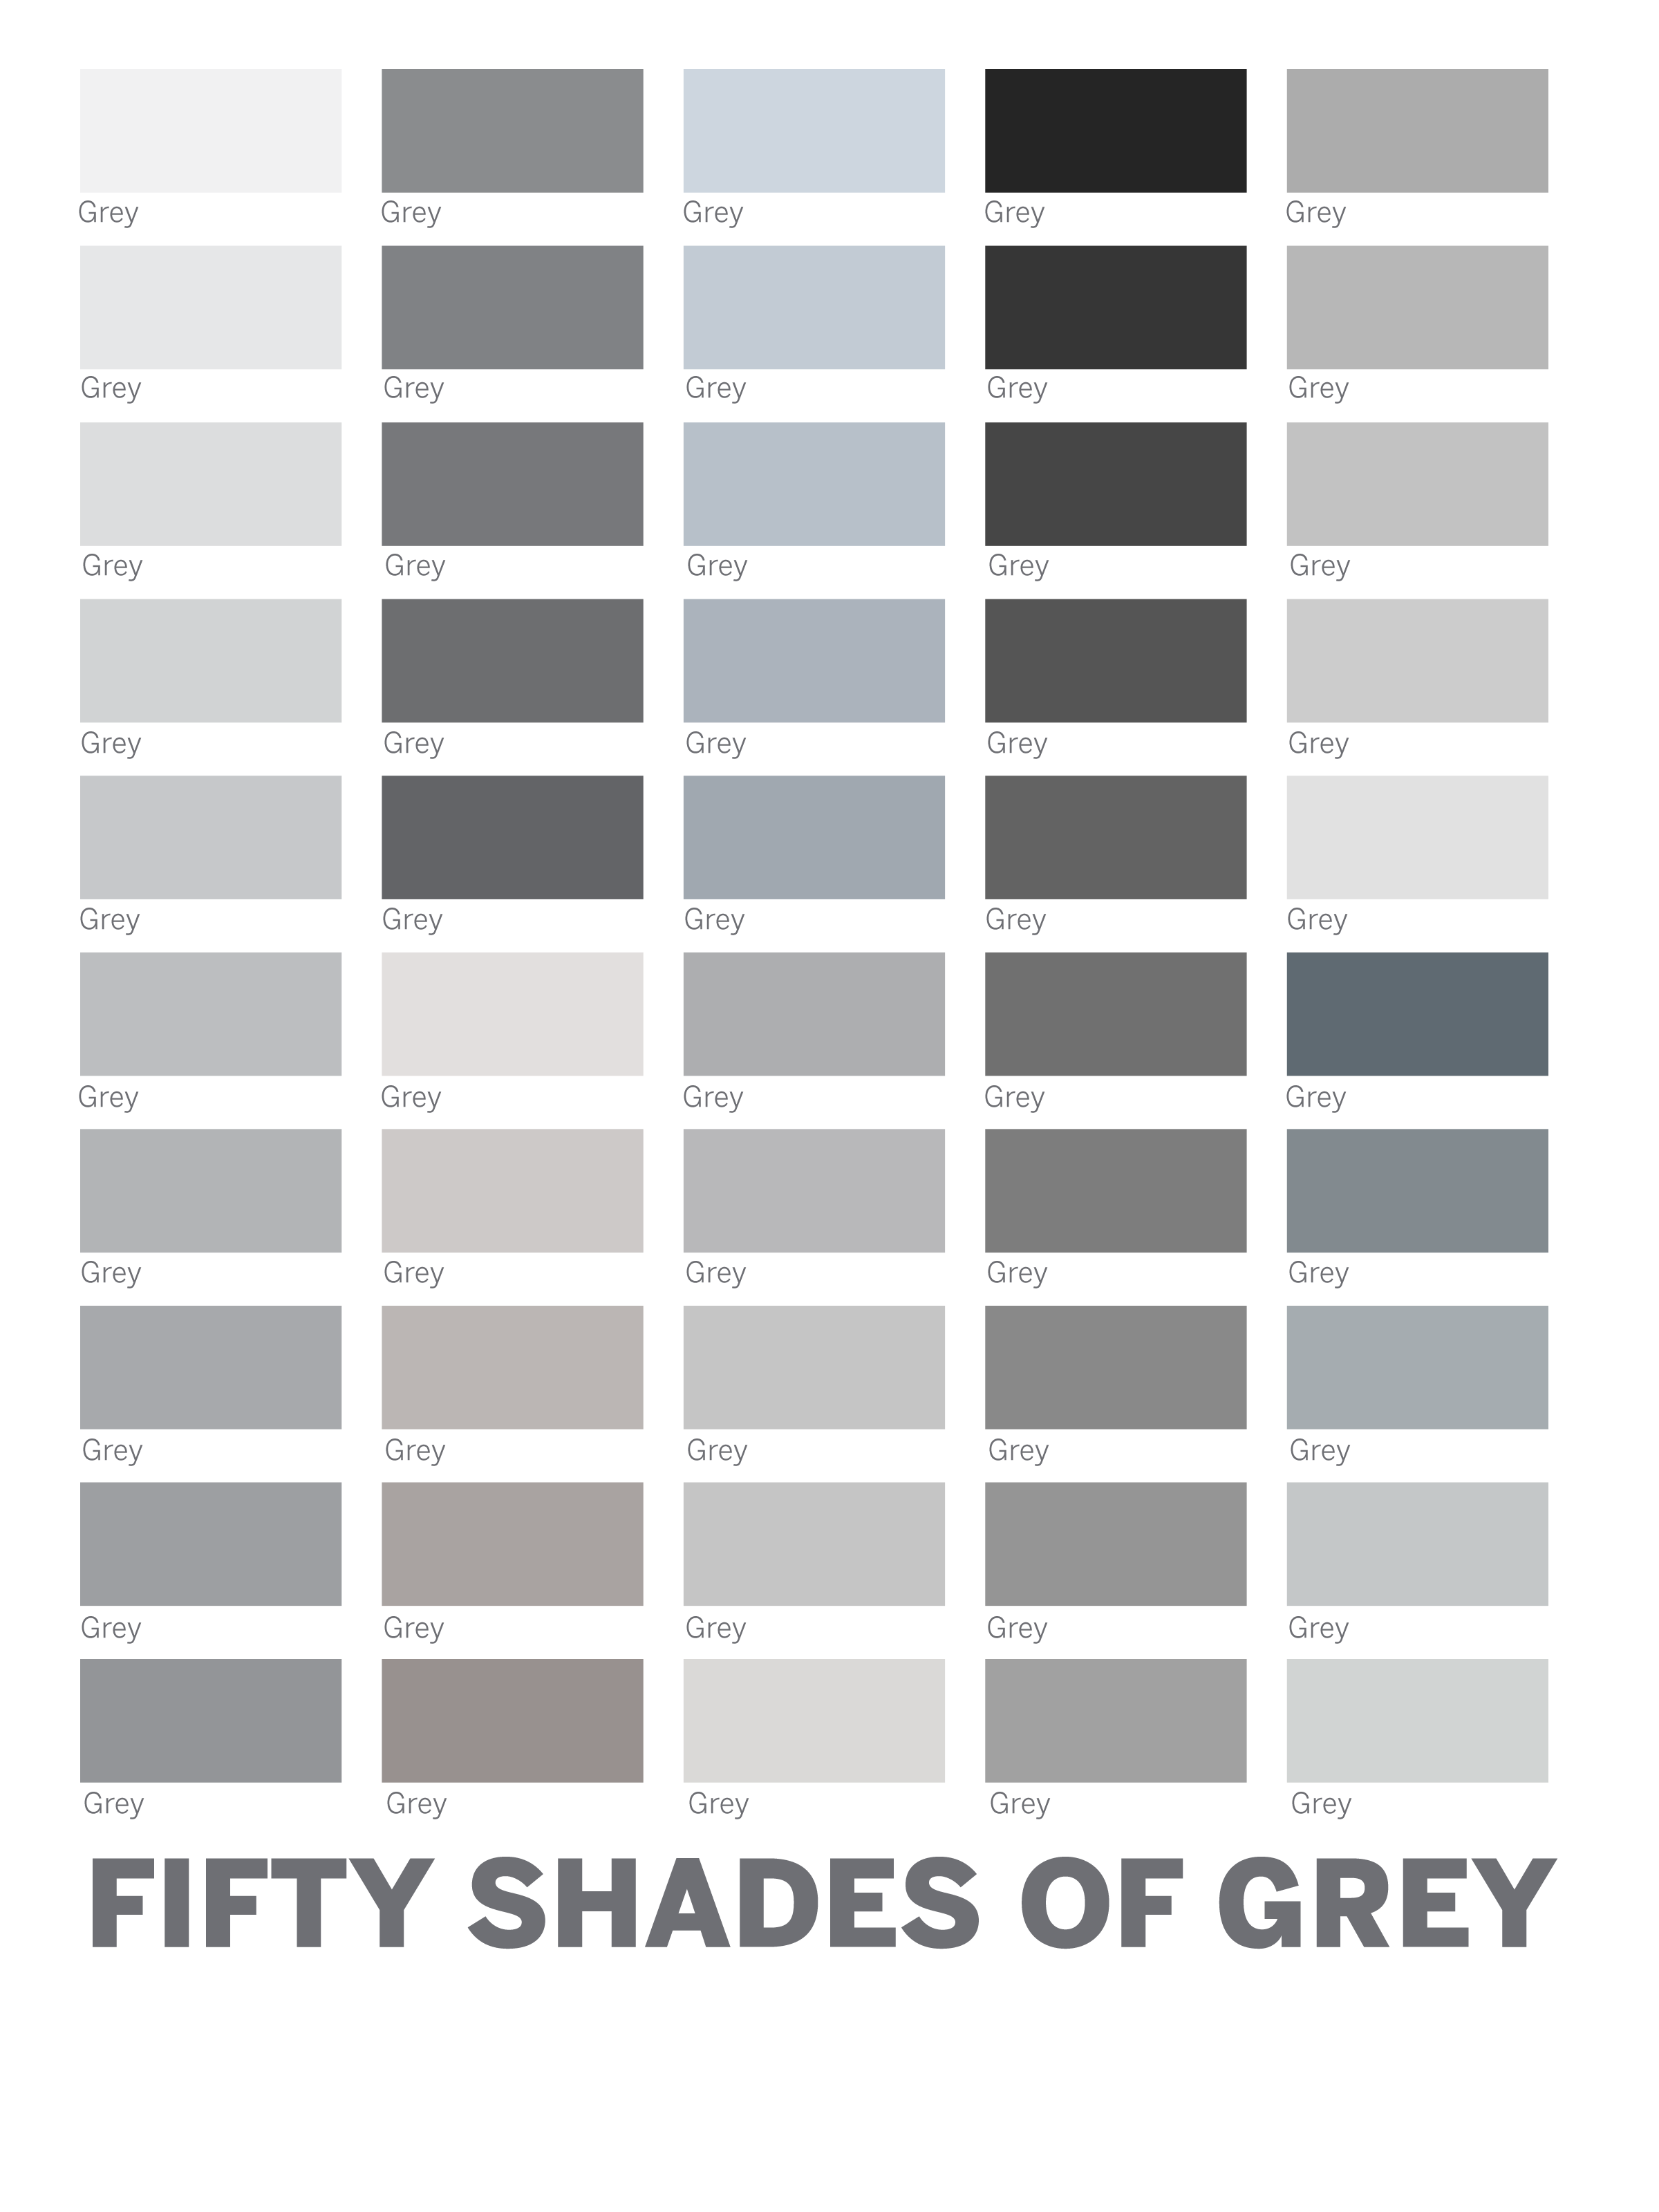 Shades Of Grey Joke Colours Google Search